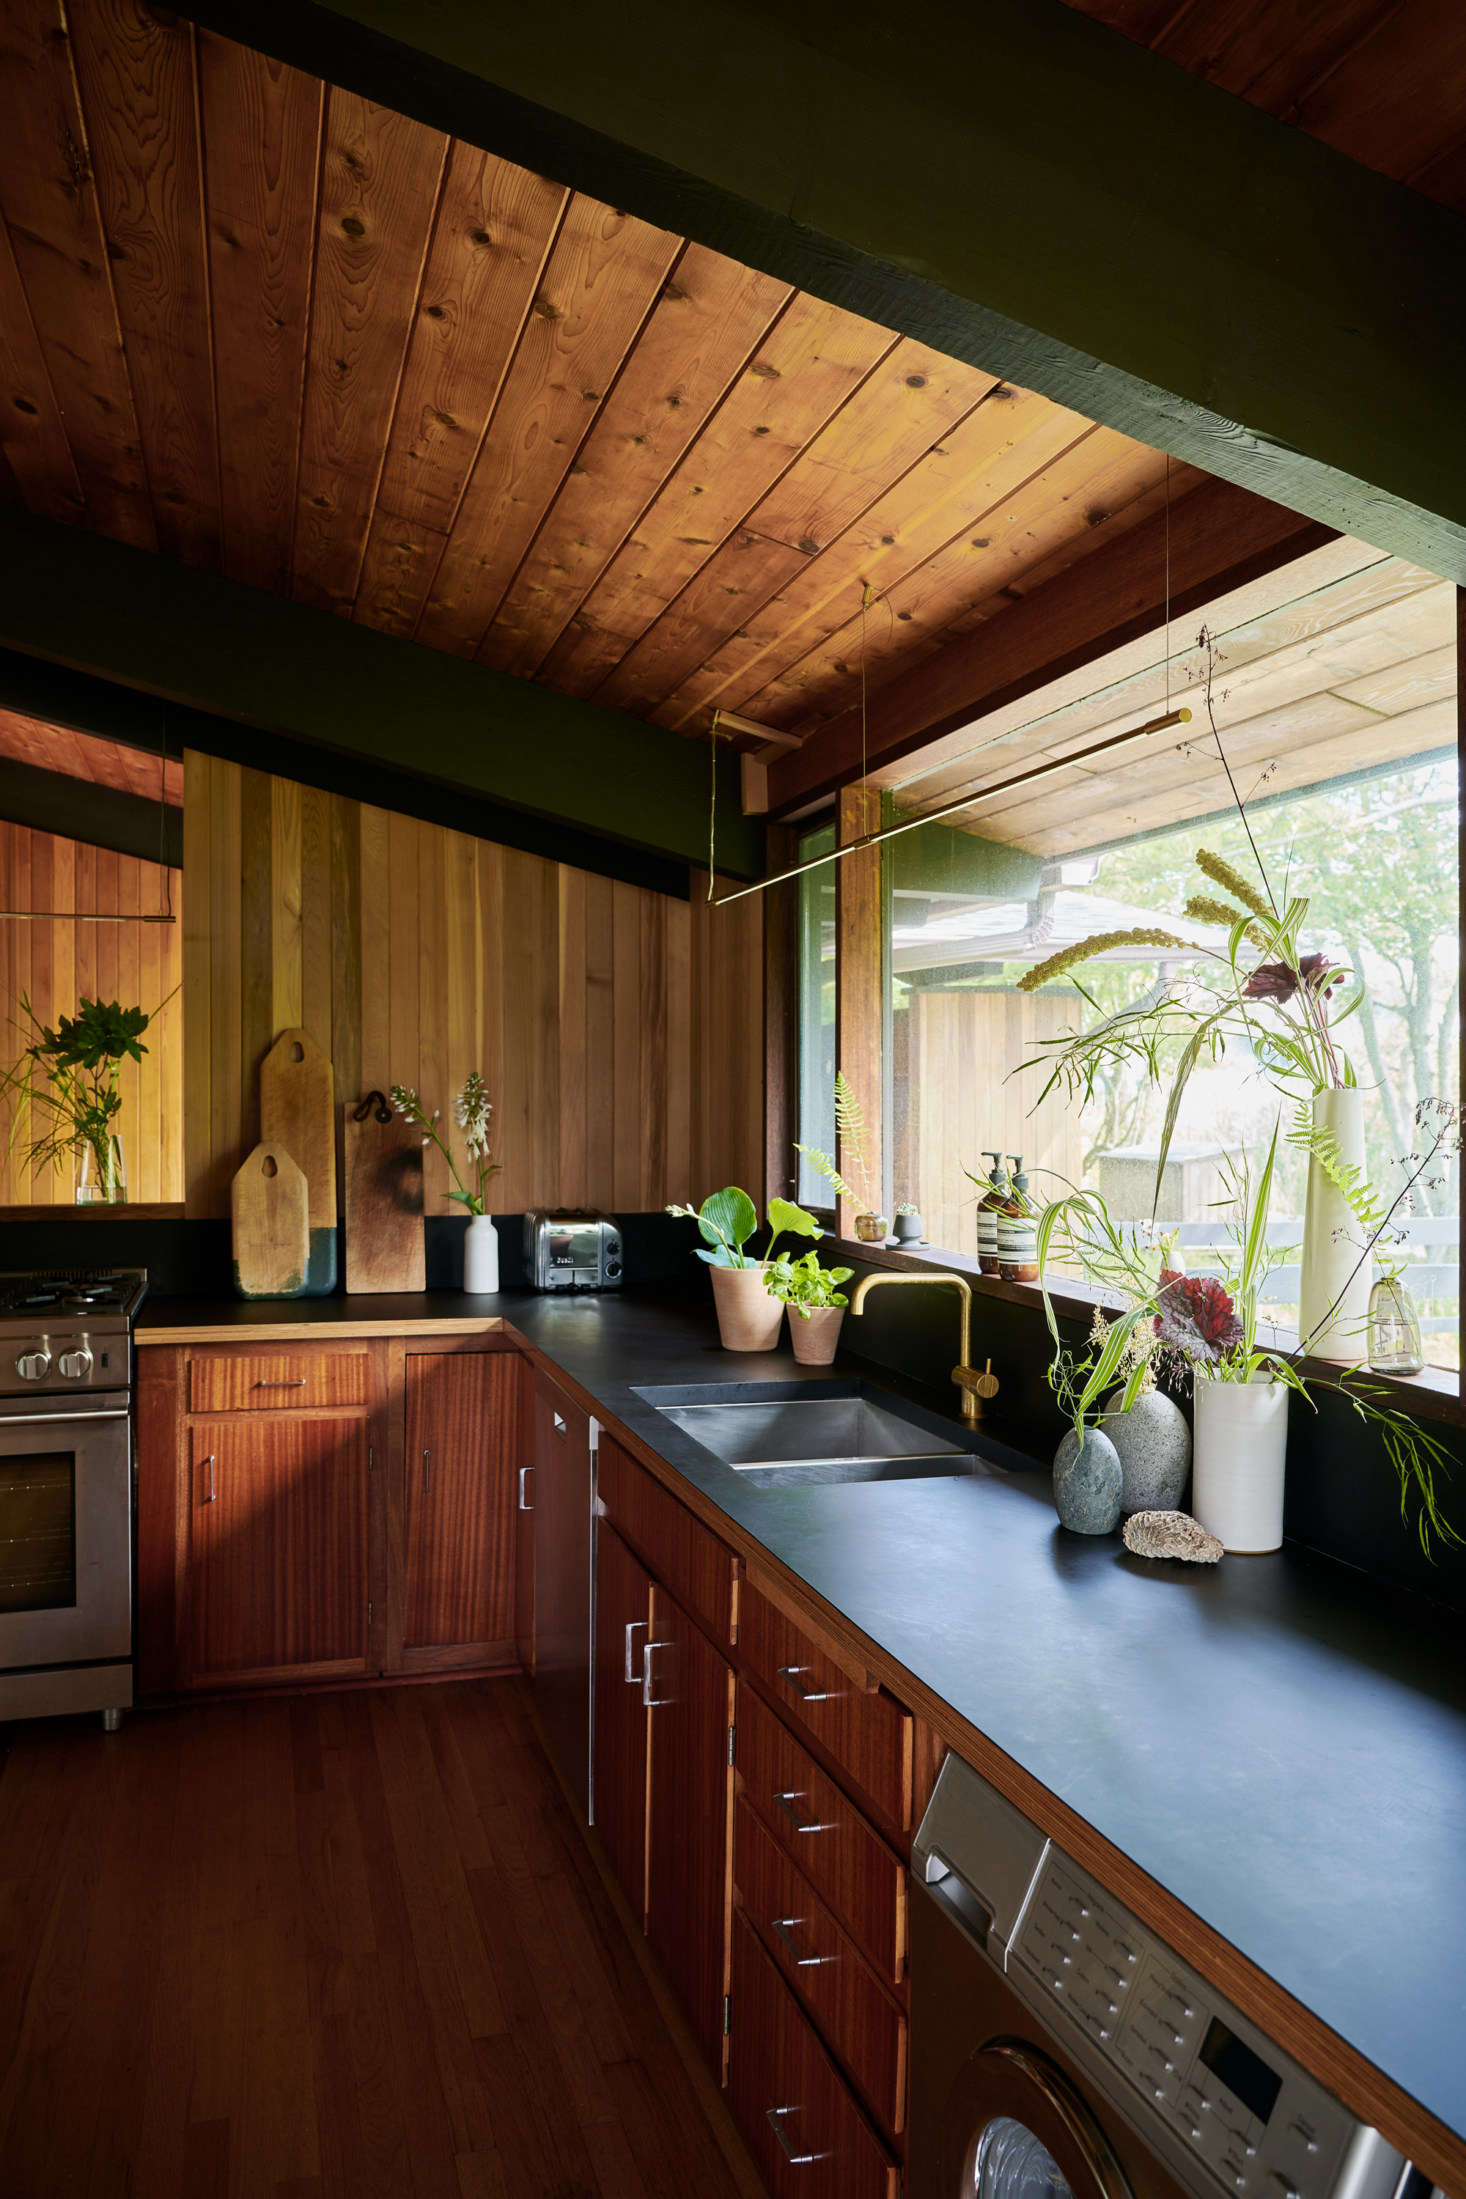 The kitchen can become a mini greenhouse, filled with botanicals of all kinds. On the counter are stems from Bloomist's dried and EcoFaux collections, including airy Dried Pepper Grass ($) and dark EcoFaux Chocolate Cosmos ($ per stem).